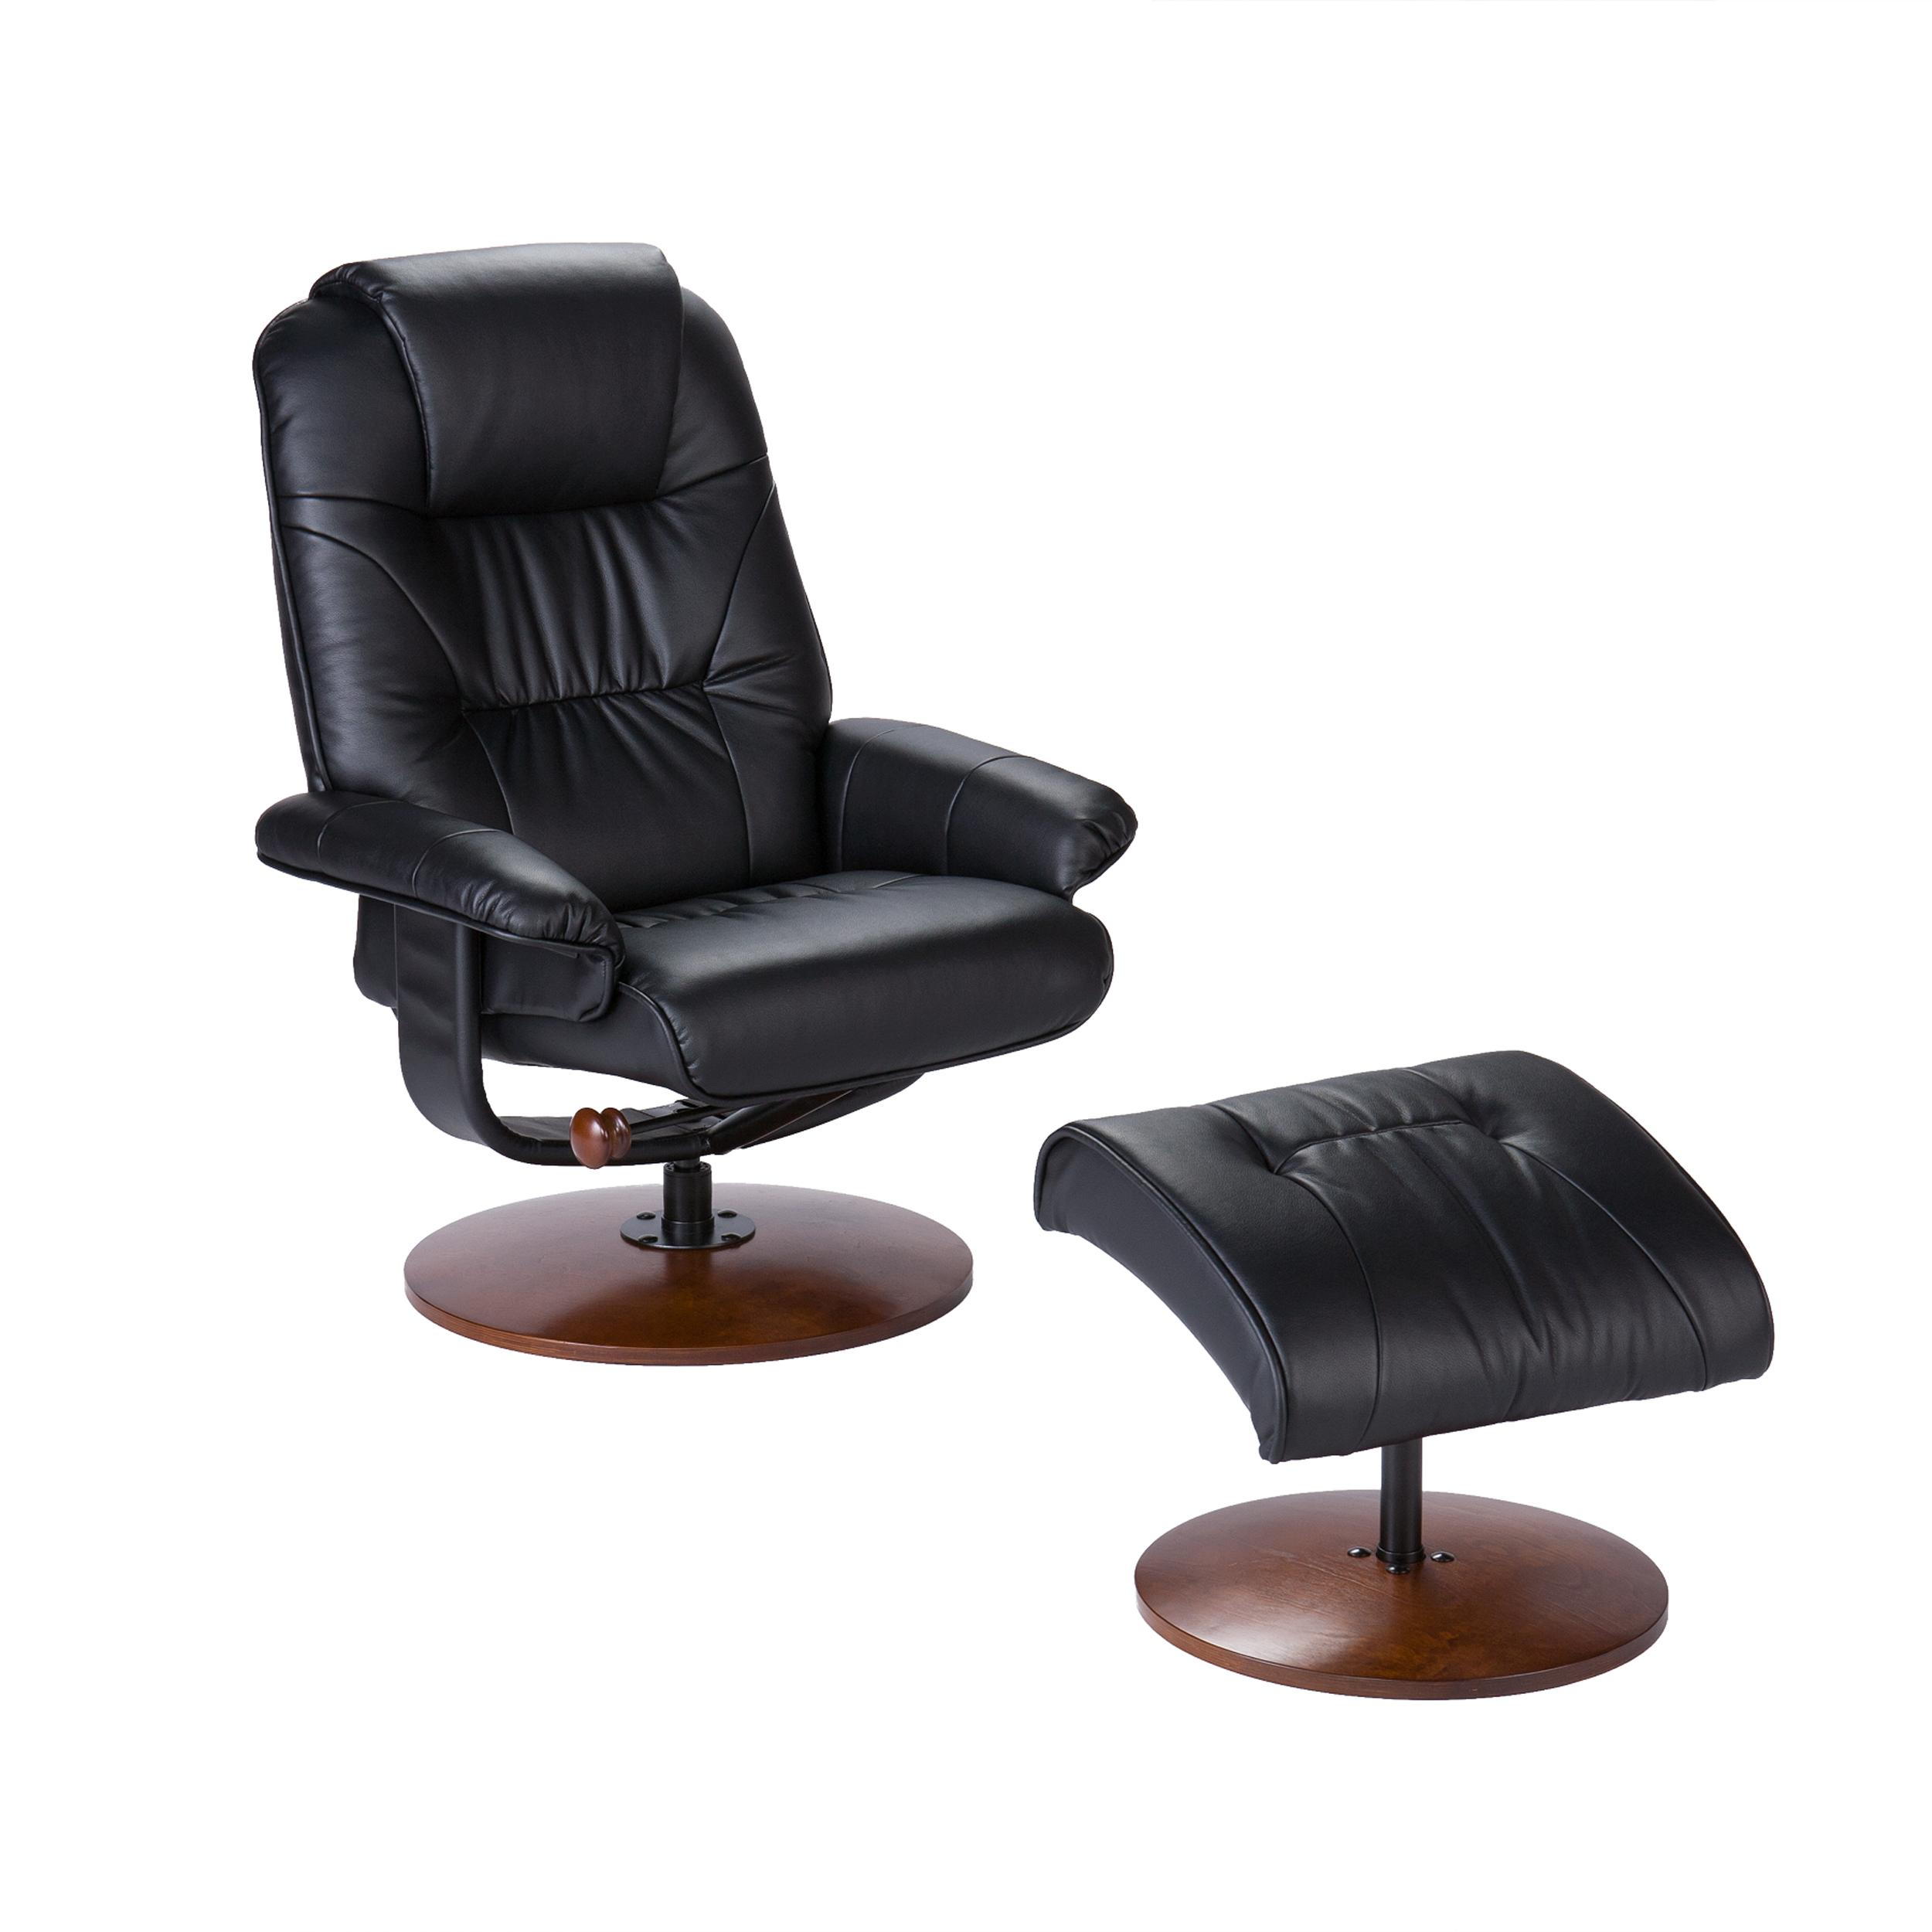 amazoncom bonded leather recliner and ottoman  black kitchen  - view larger